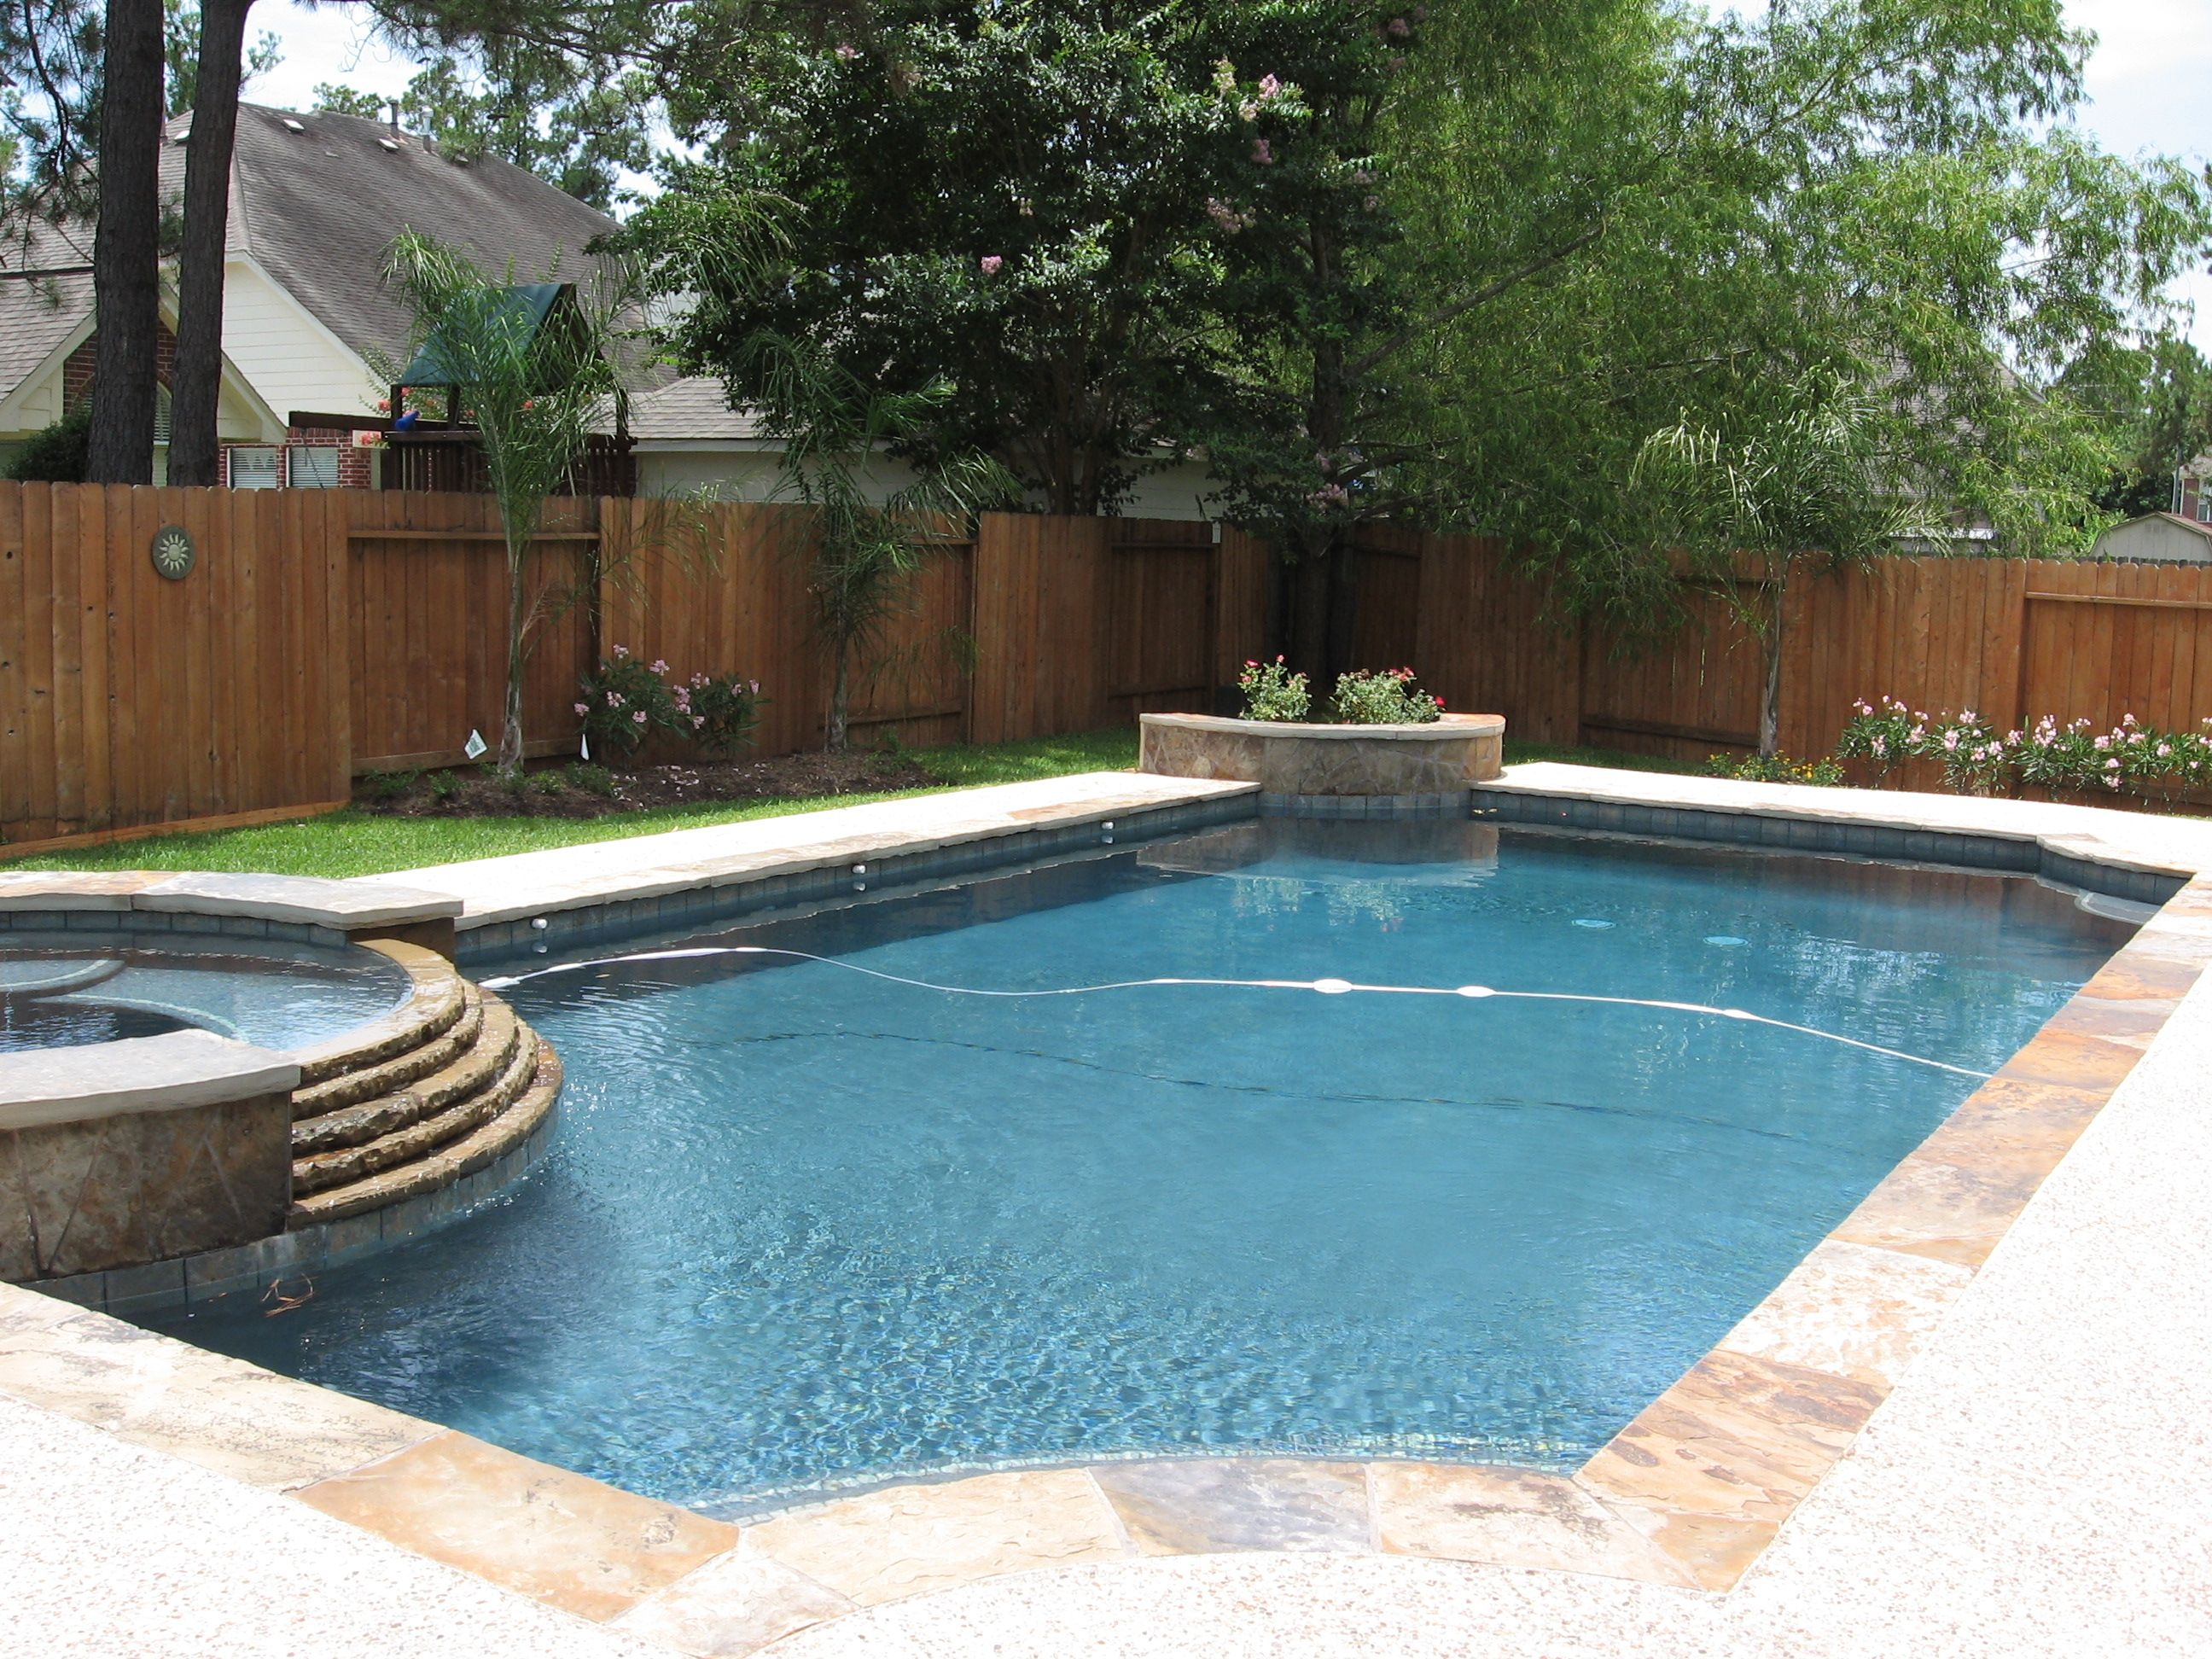 Pool Designs With Spa rectangle pools with spas | natural pool designs contemporary pool